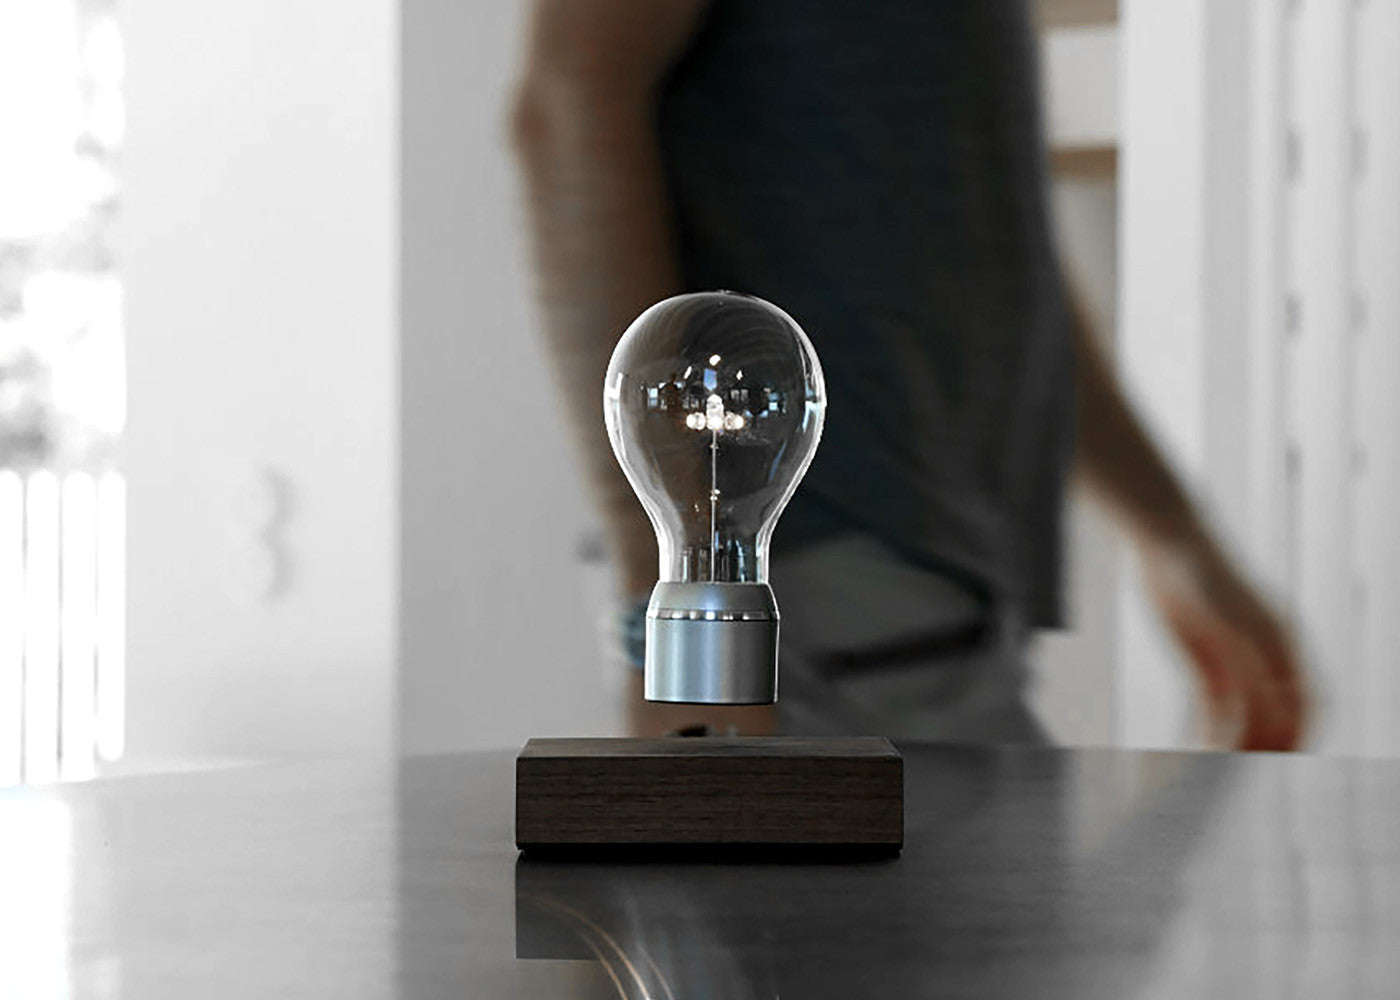 Lifestyle image of FLYTE Levitating light bulb Manhattan in apartment environment